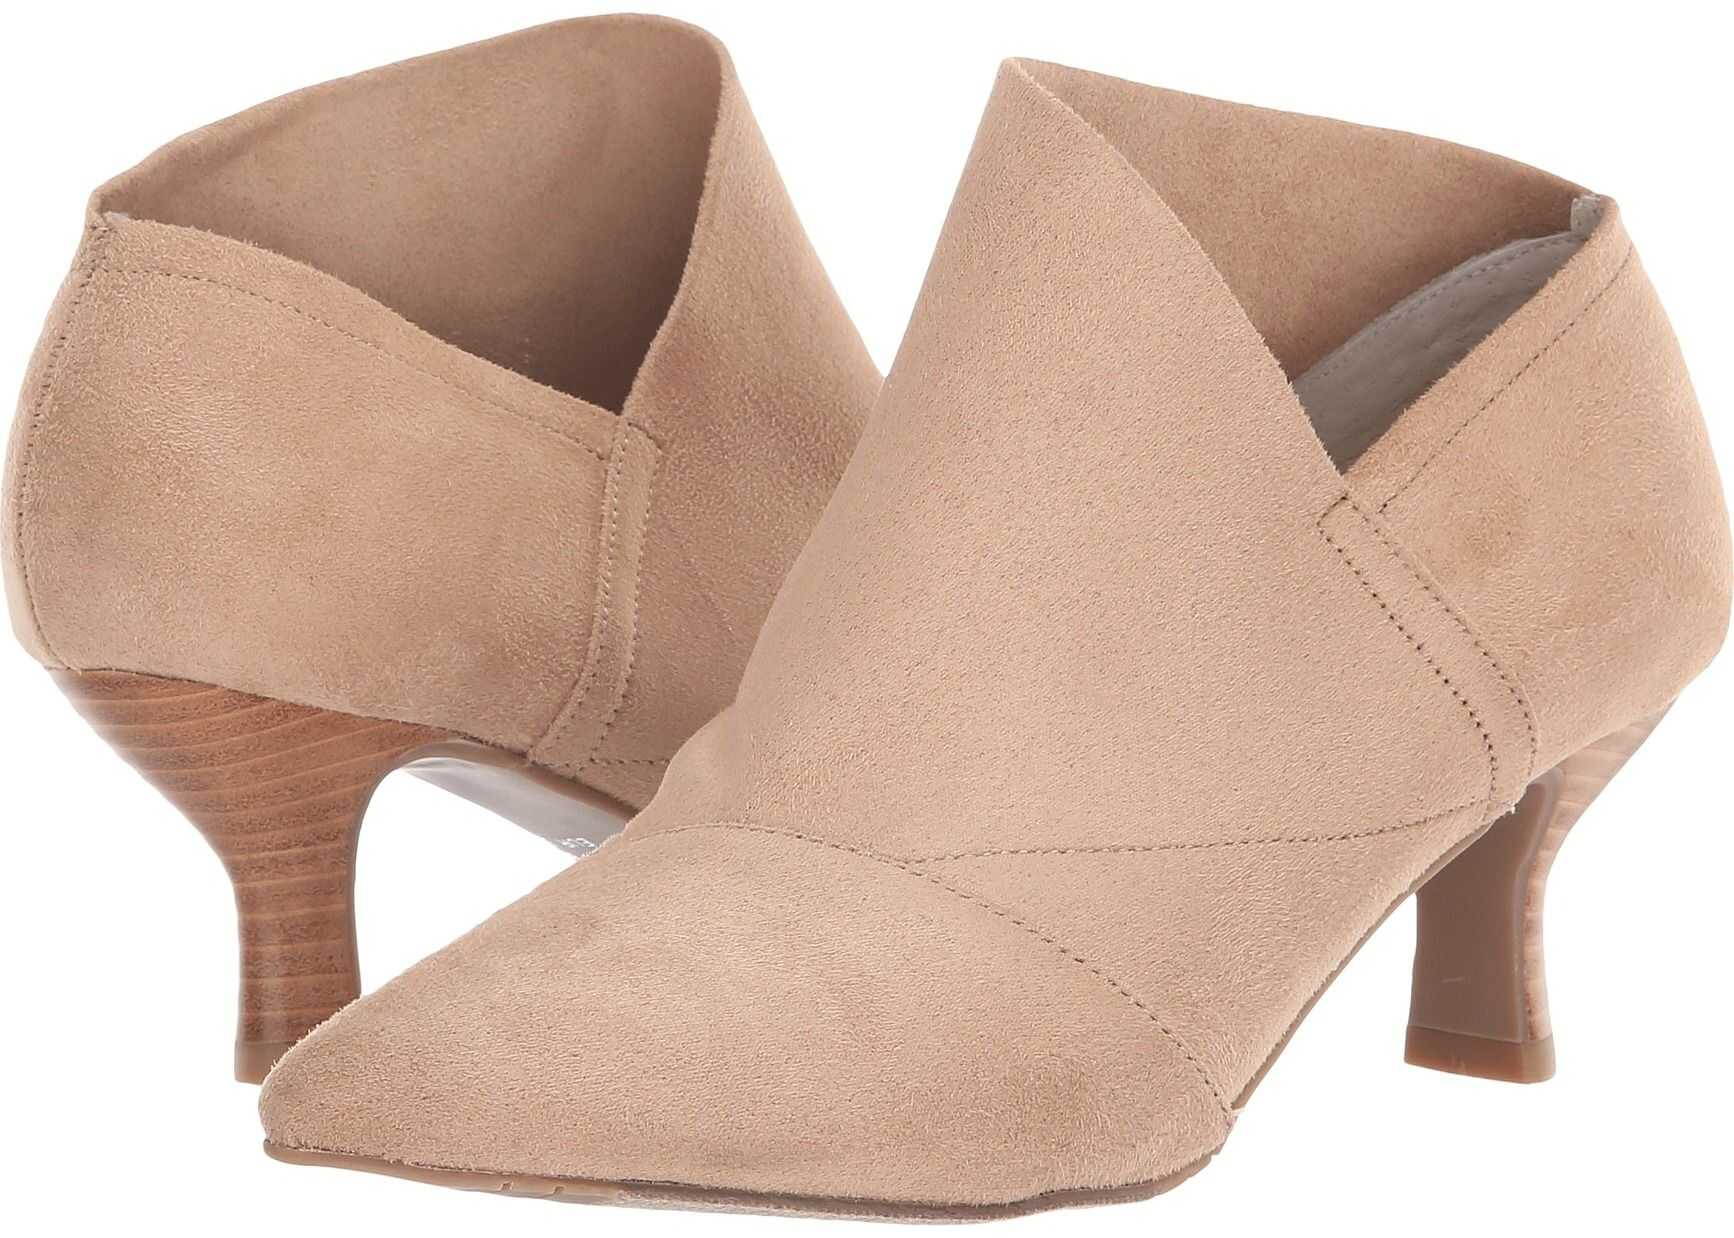 Adrianna Papell Hayes Oat Stretch Micro Suede